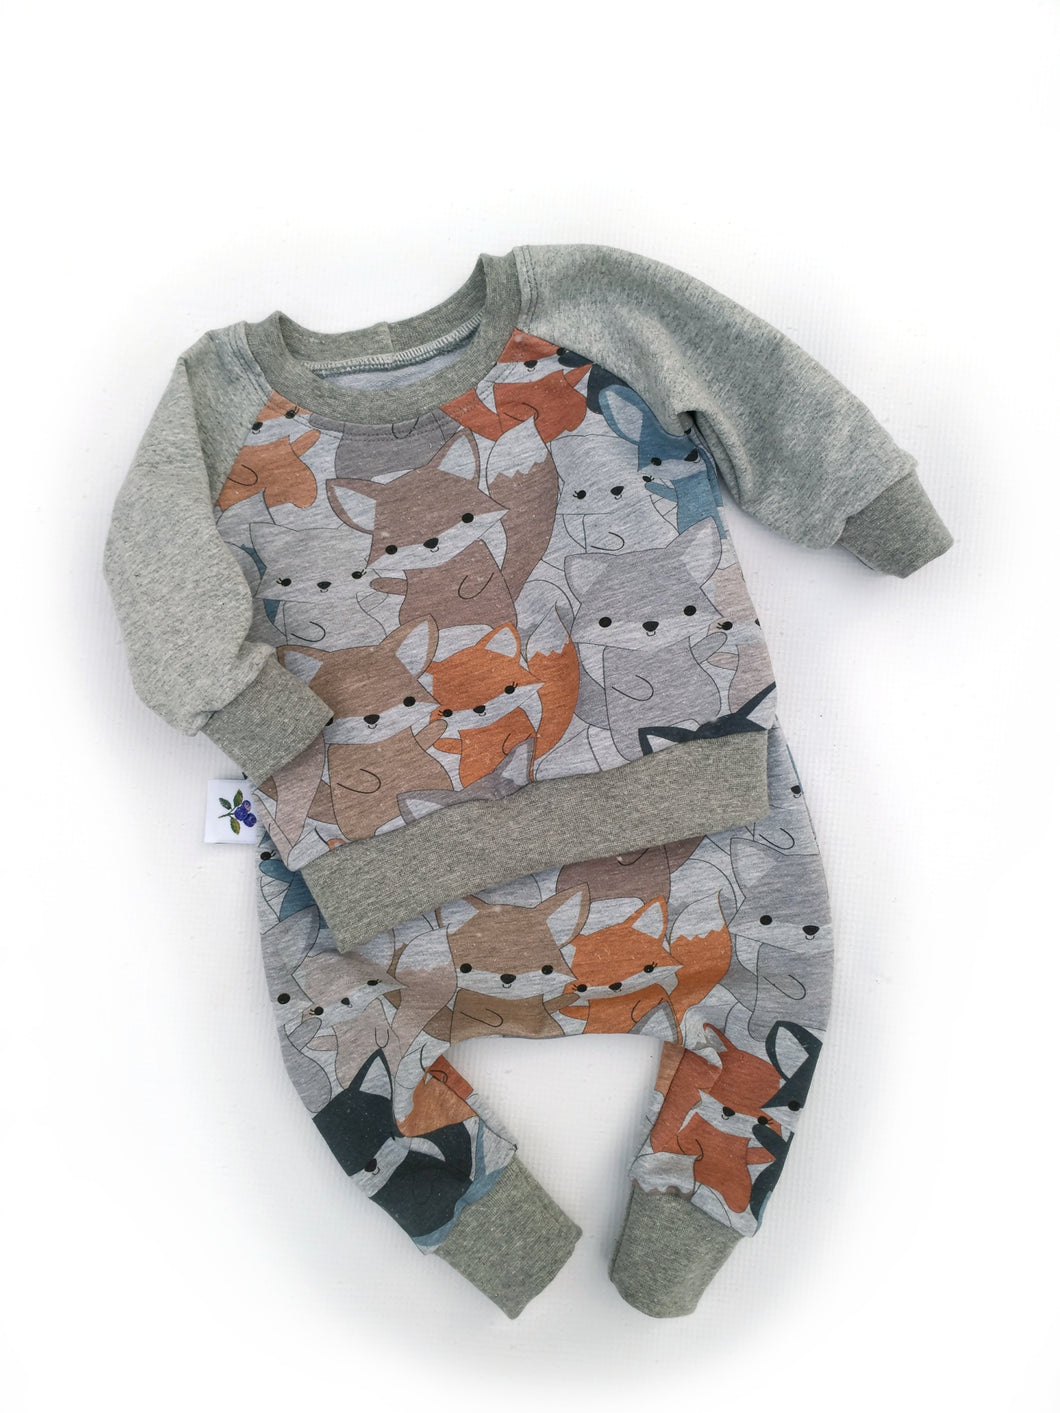 Harem Pants and Sweatshirt Set -  Cuties, sizes newborn to 9/12 months